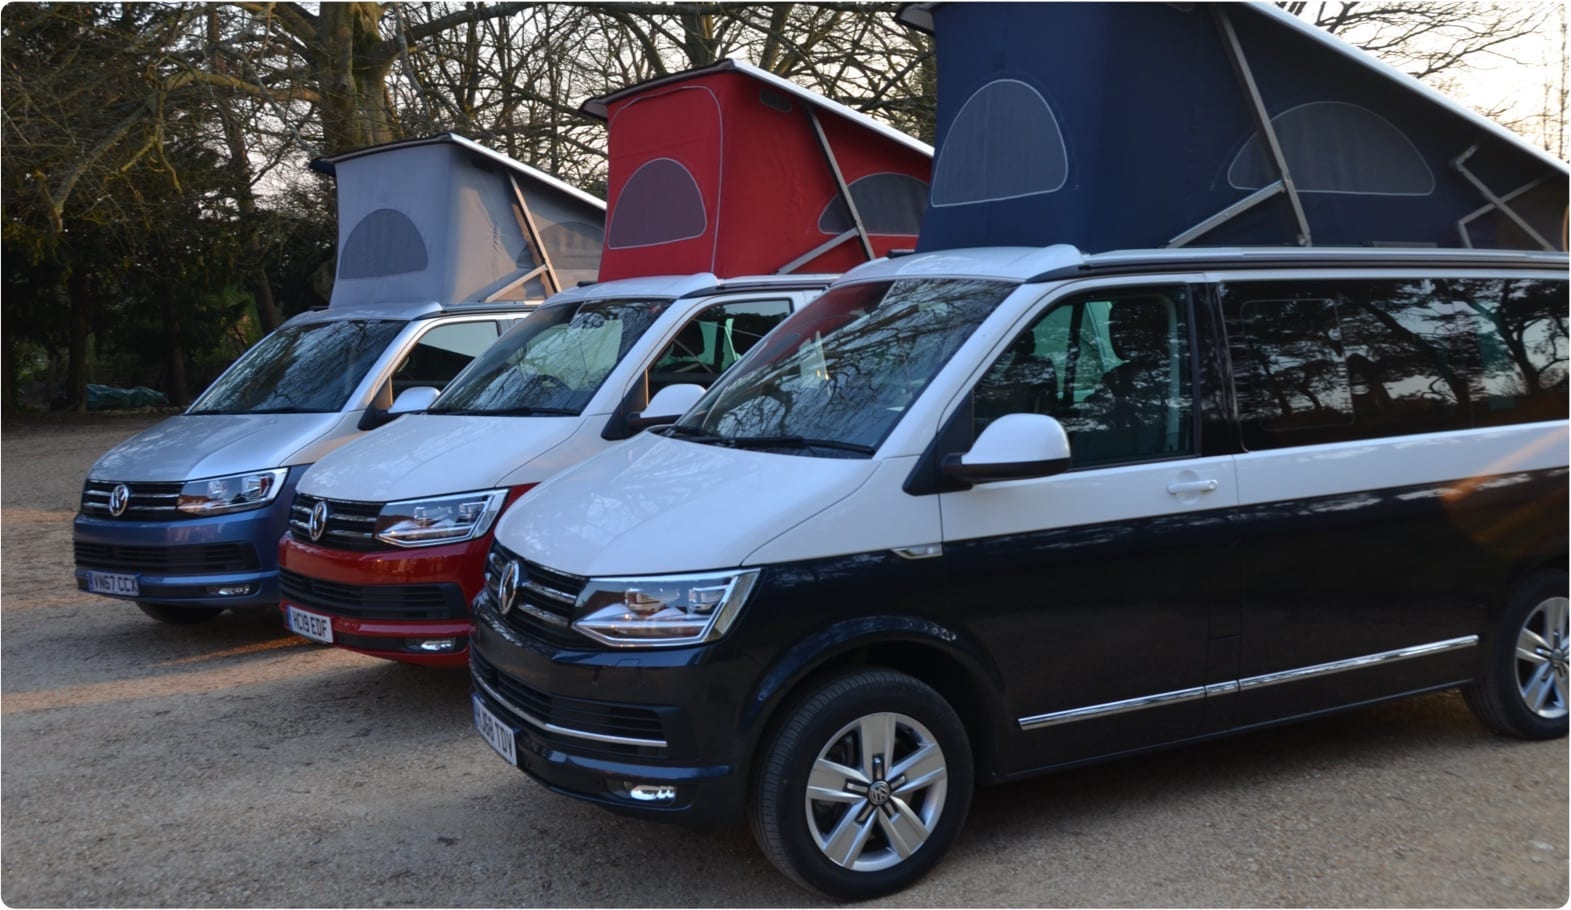 A photo with 3 different VW campervans which are available for hire from Southampton campers.